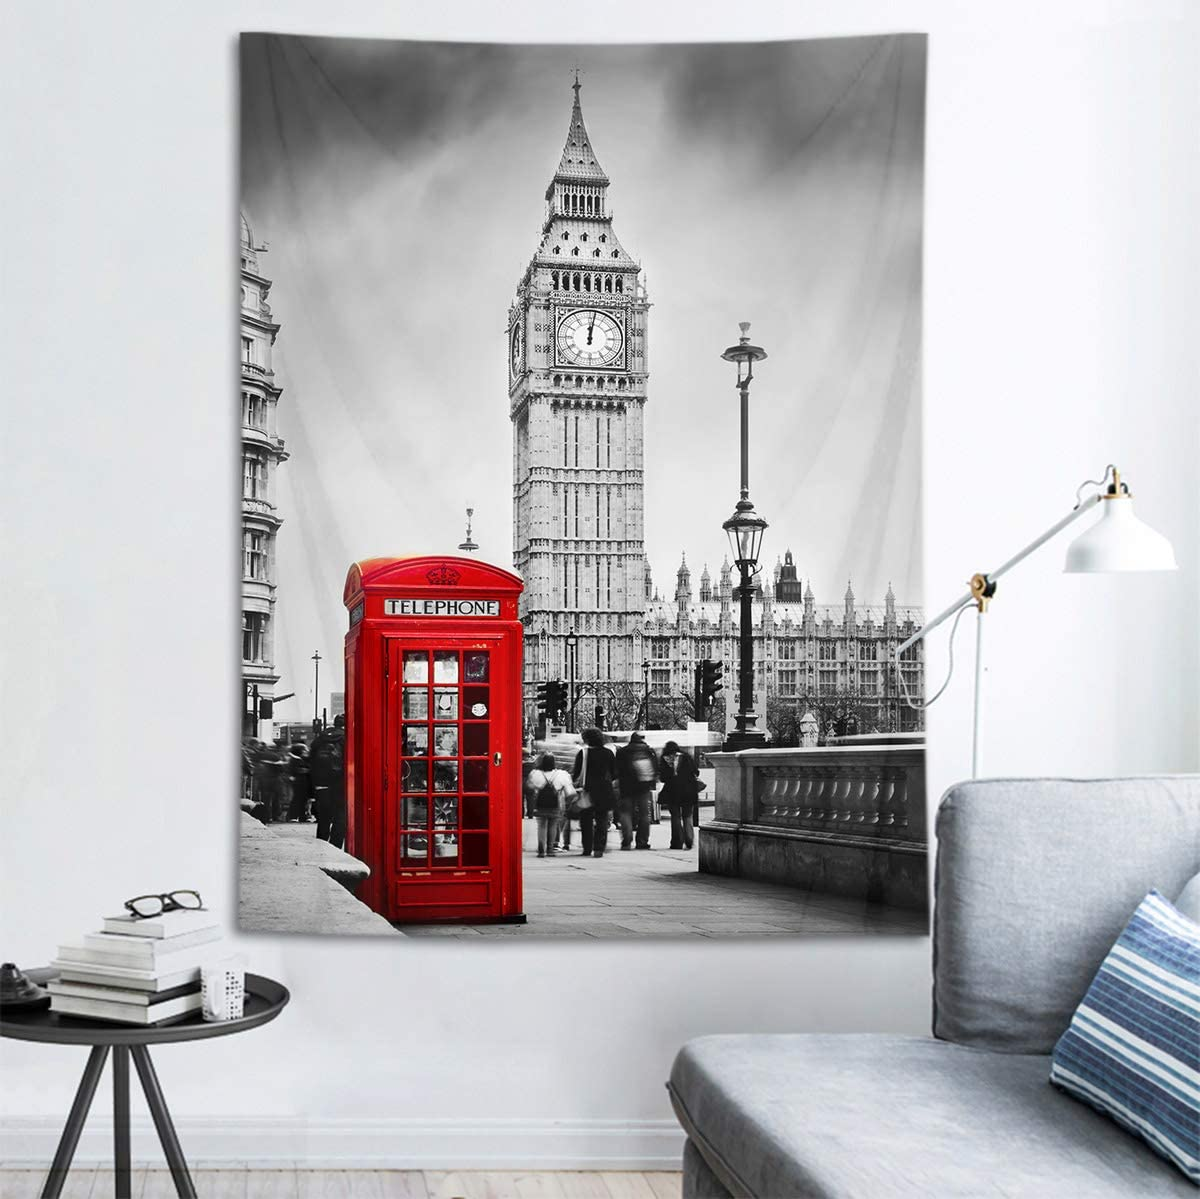 HVEST Big Ben Tapestry Red Phone Booth on The Street of London Wall Hanging Grey Cityscape Tapestries for Bedroom Living Room Dorm Party Decor,60Wx80H inches